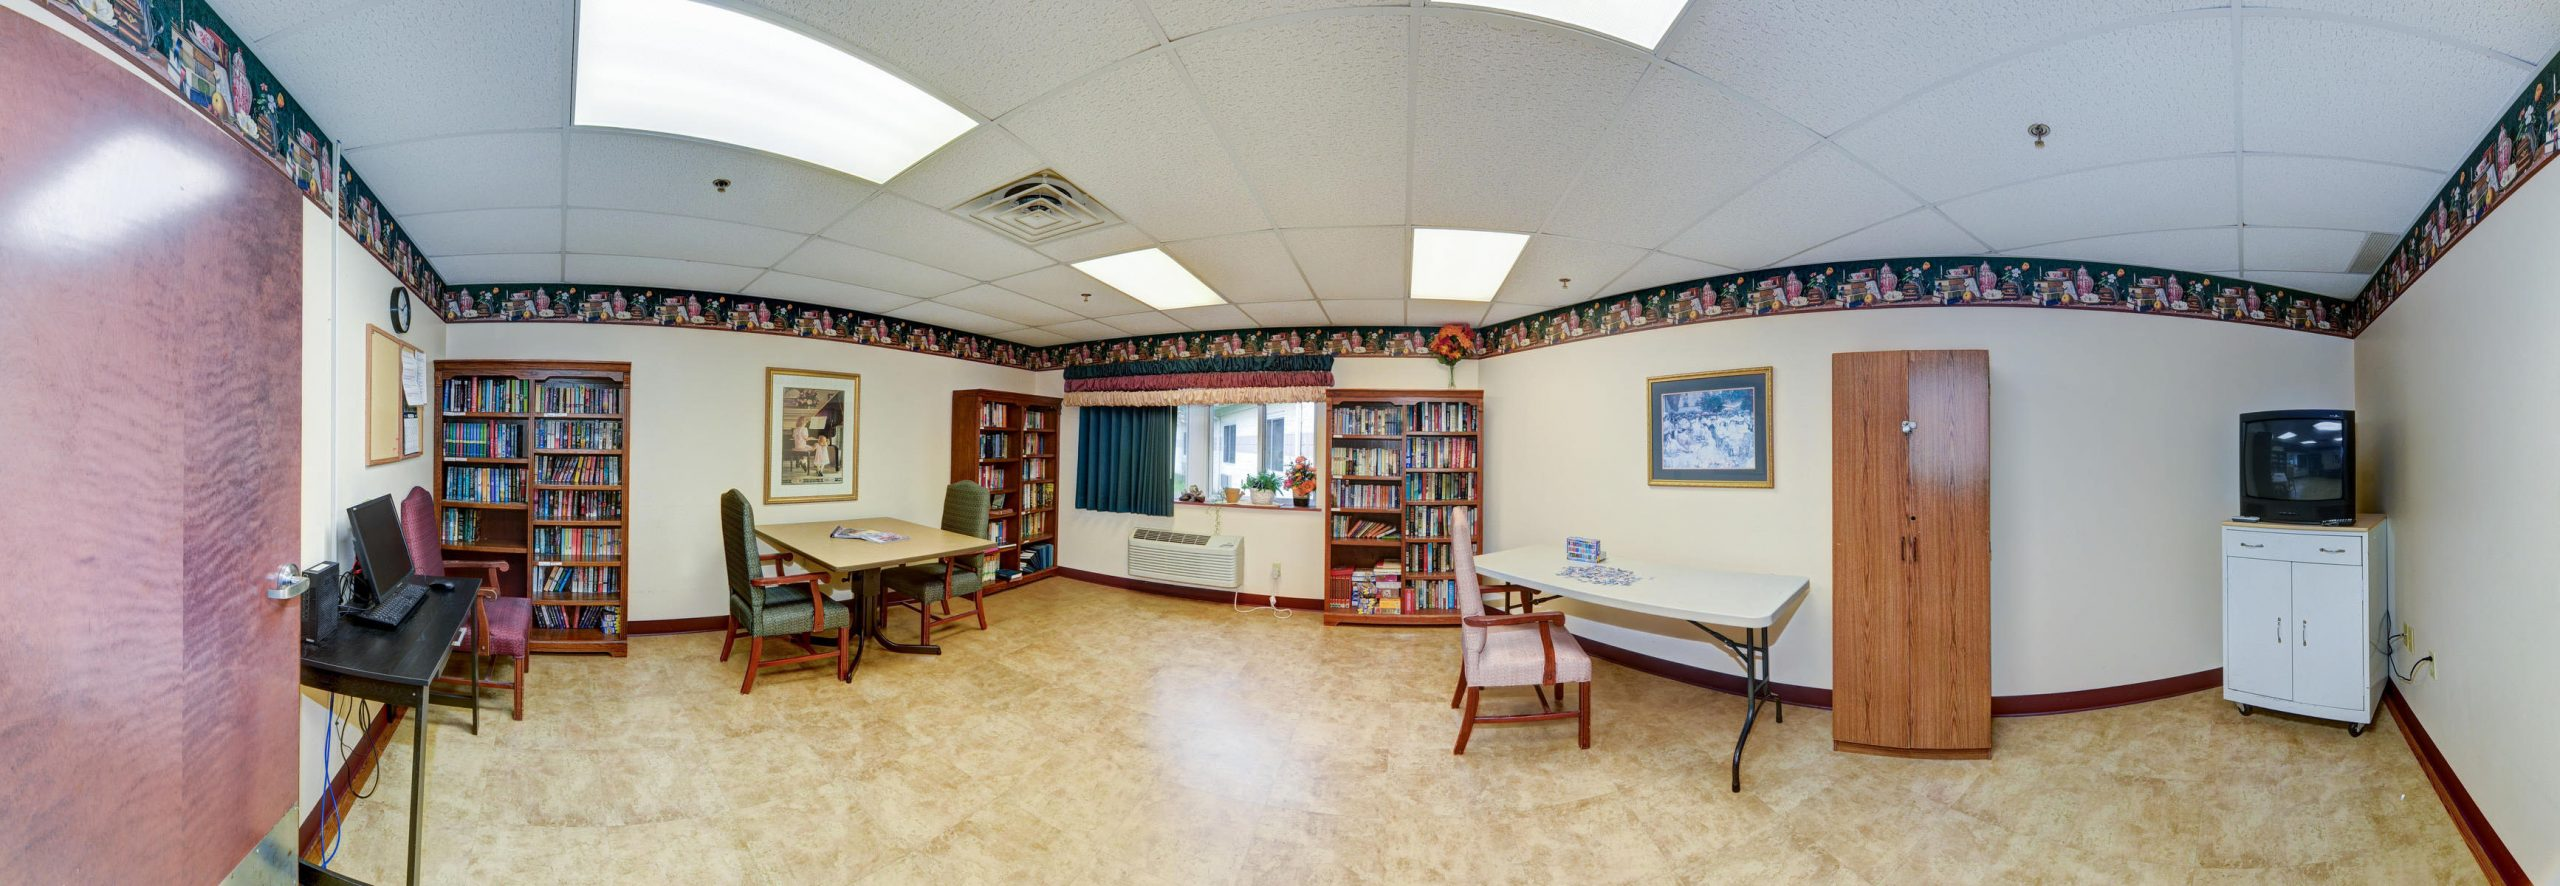 Panoramic view of Stonerise Lewisburg library with bookshelves and seating areas